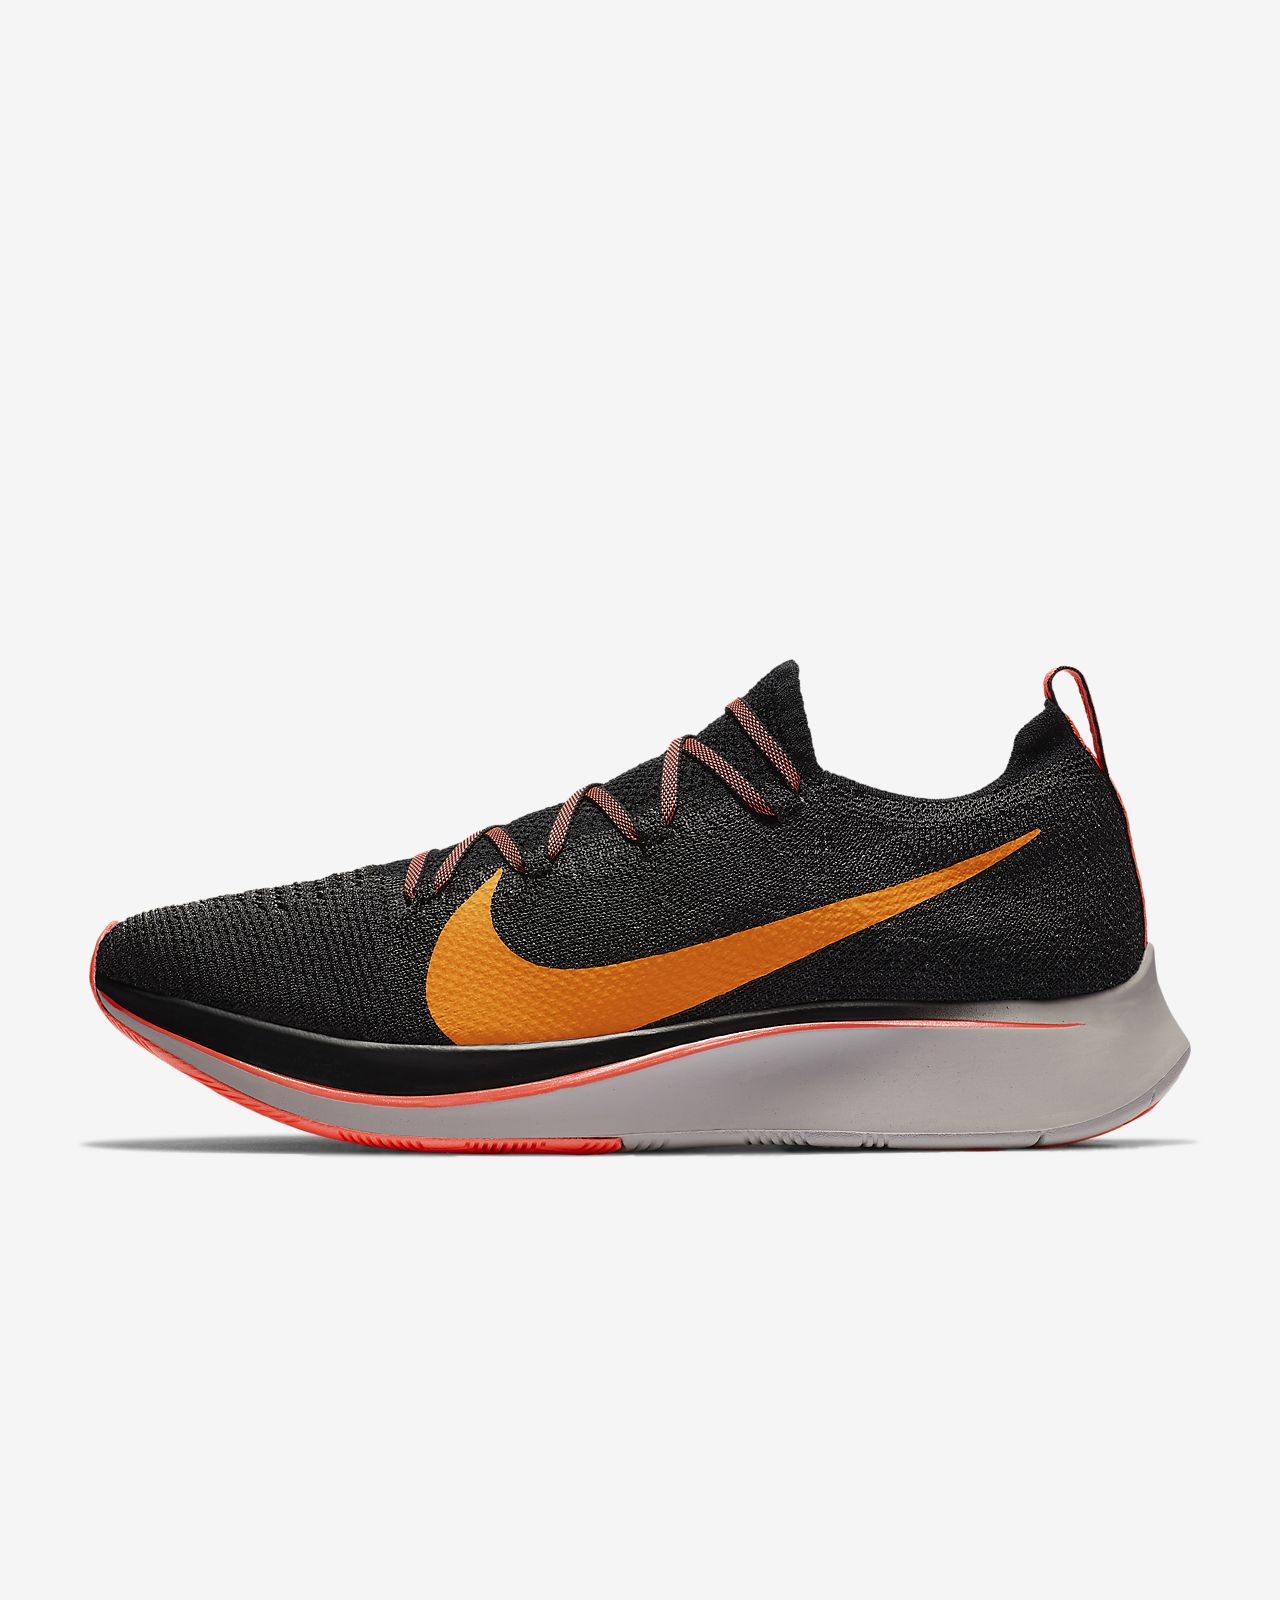 designer fashion new photos best price Nike Zoom Fly Flyknit Men's Running Shoe